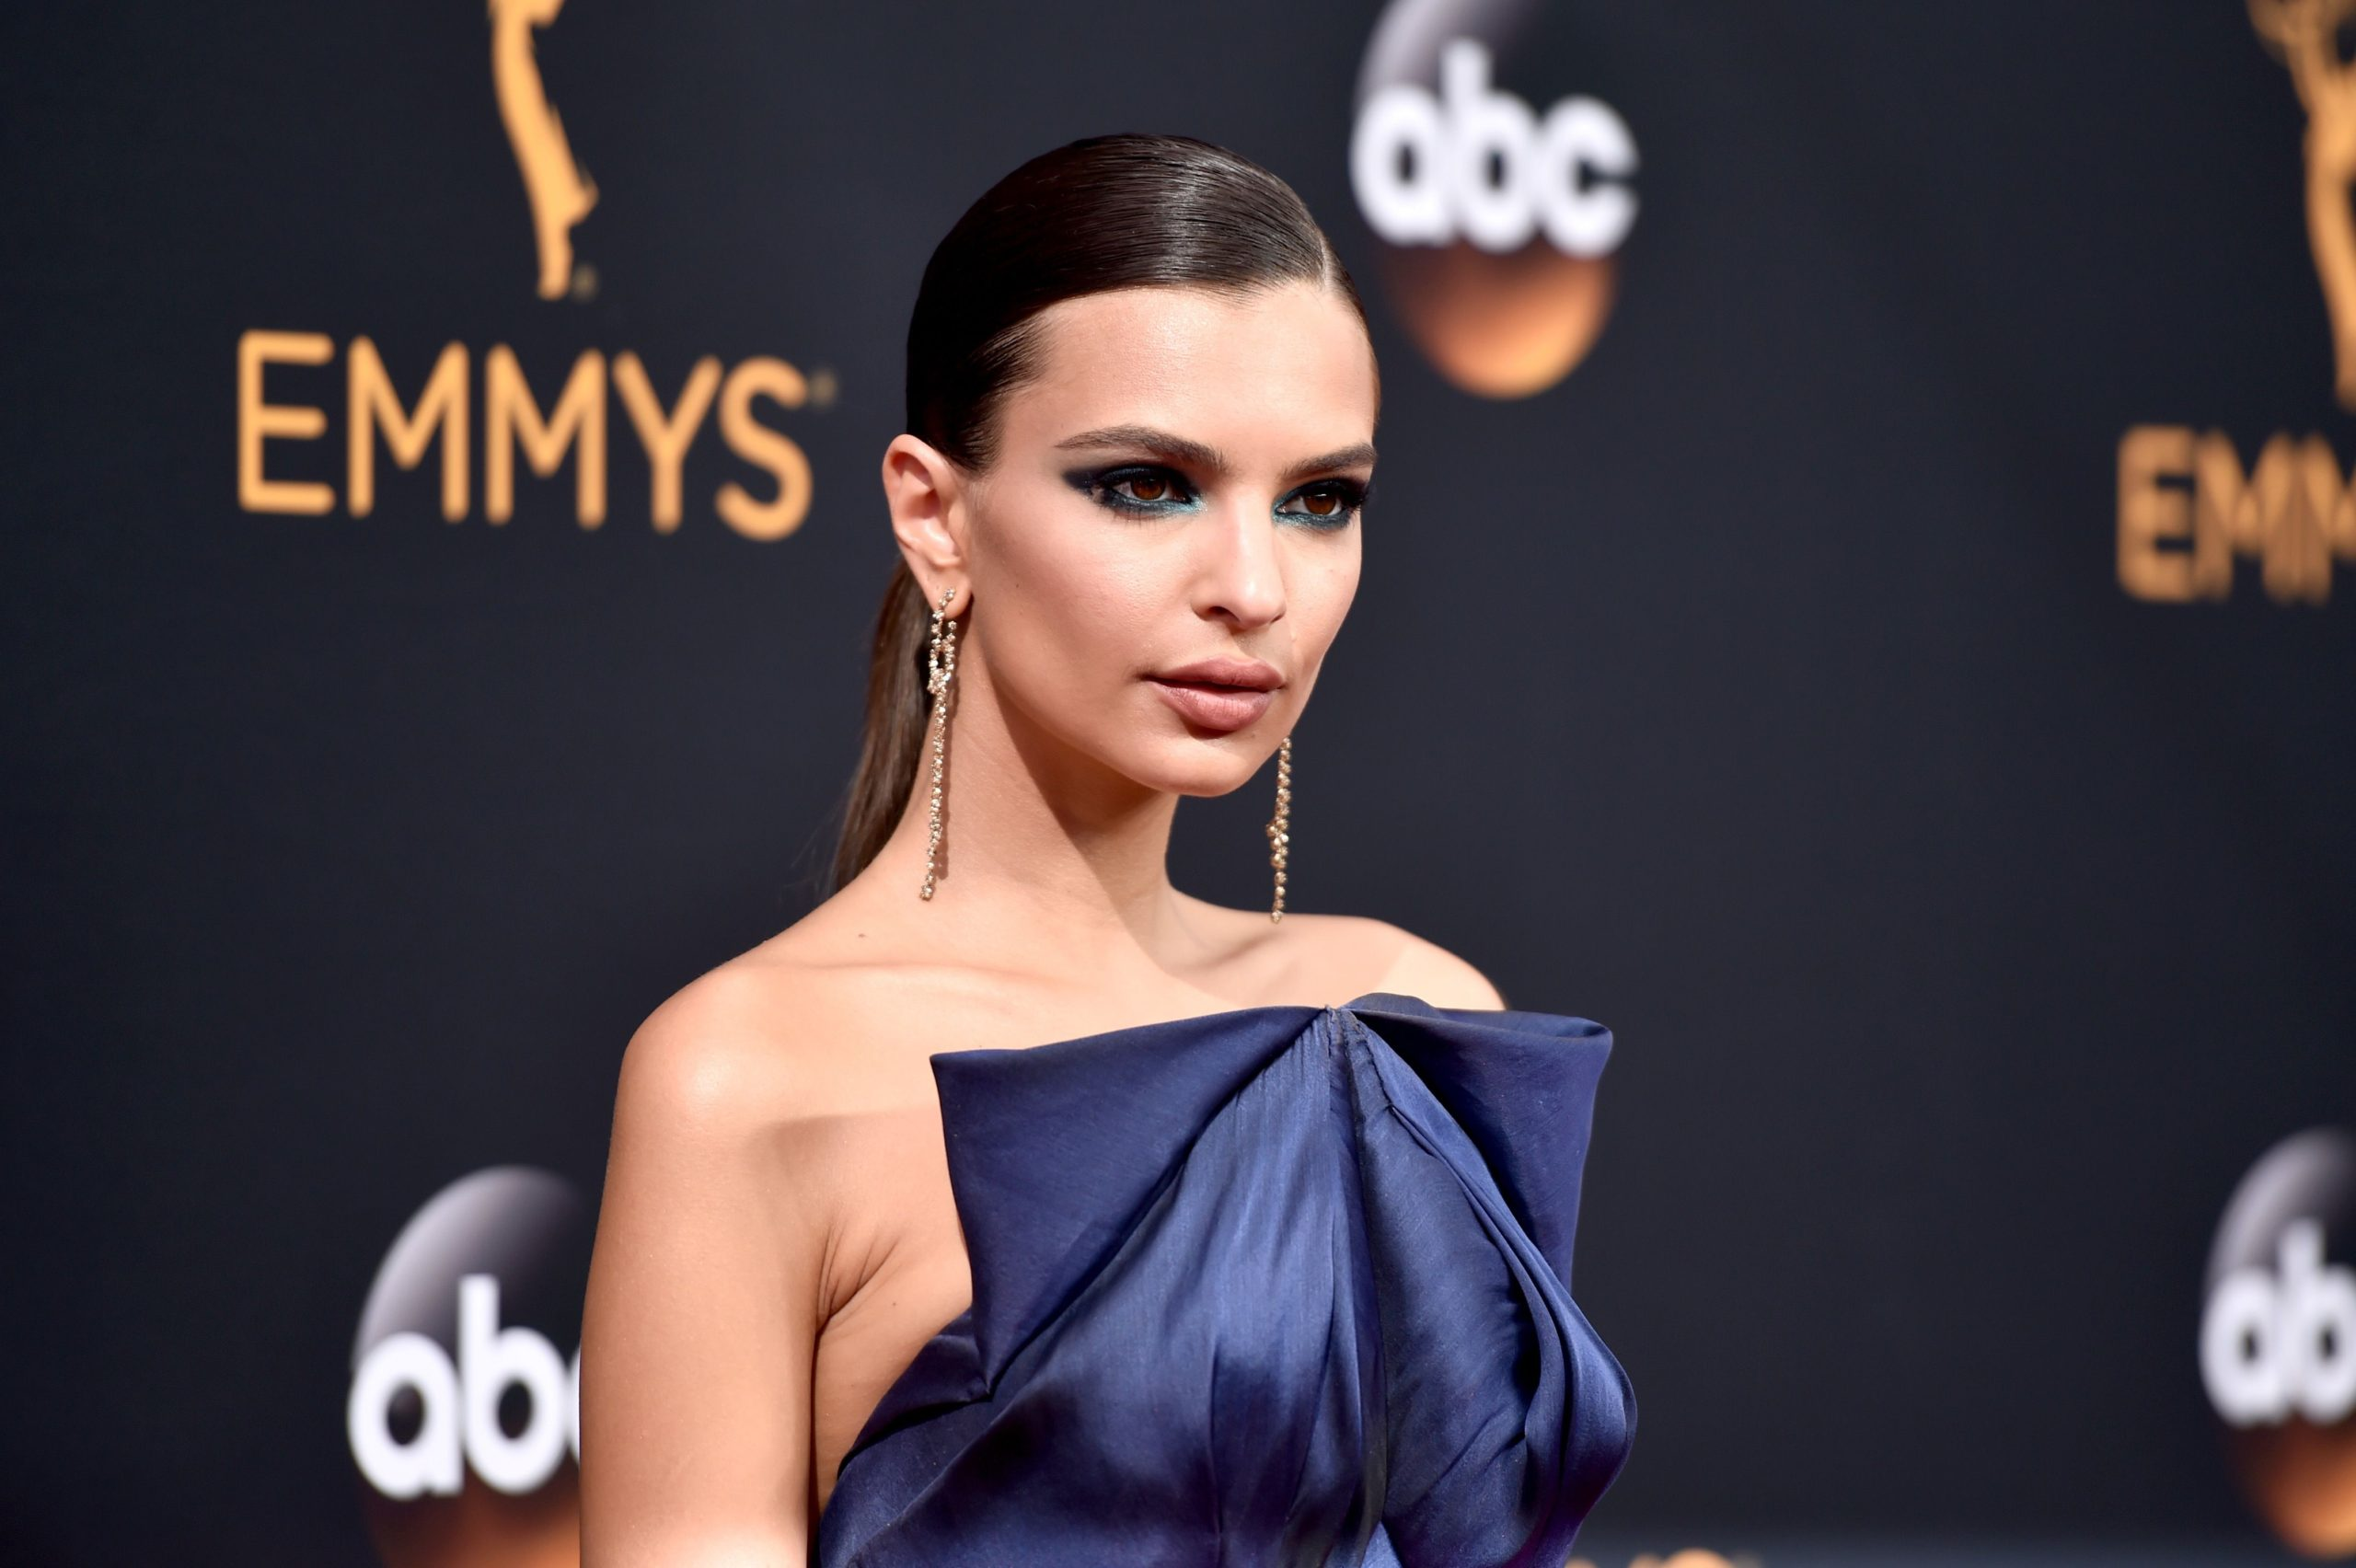 Emily Ratajkowski Nice Dress Photo scaled - Emily Ratajkowski Net Worth, Pics, Wallpapers, Career and Biography